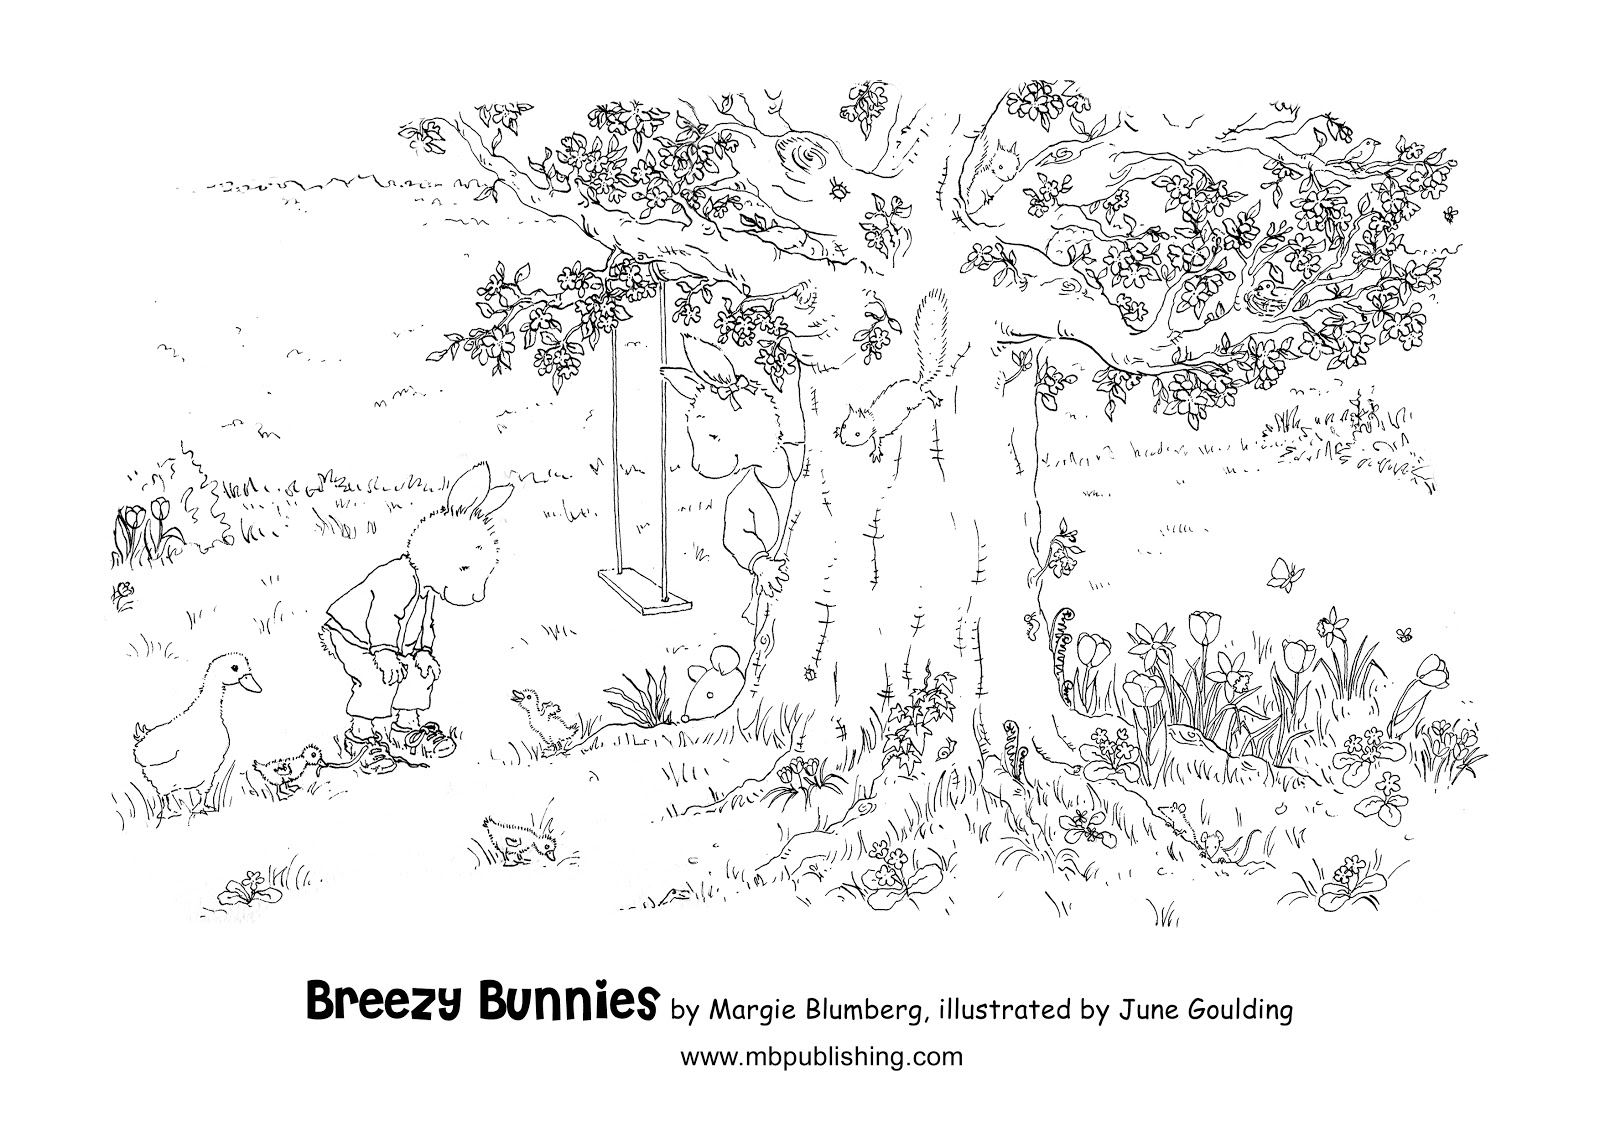 http://www.mbpublishing.com/coloring-pages.html